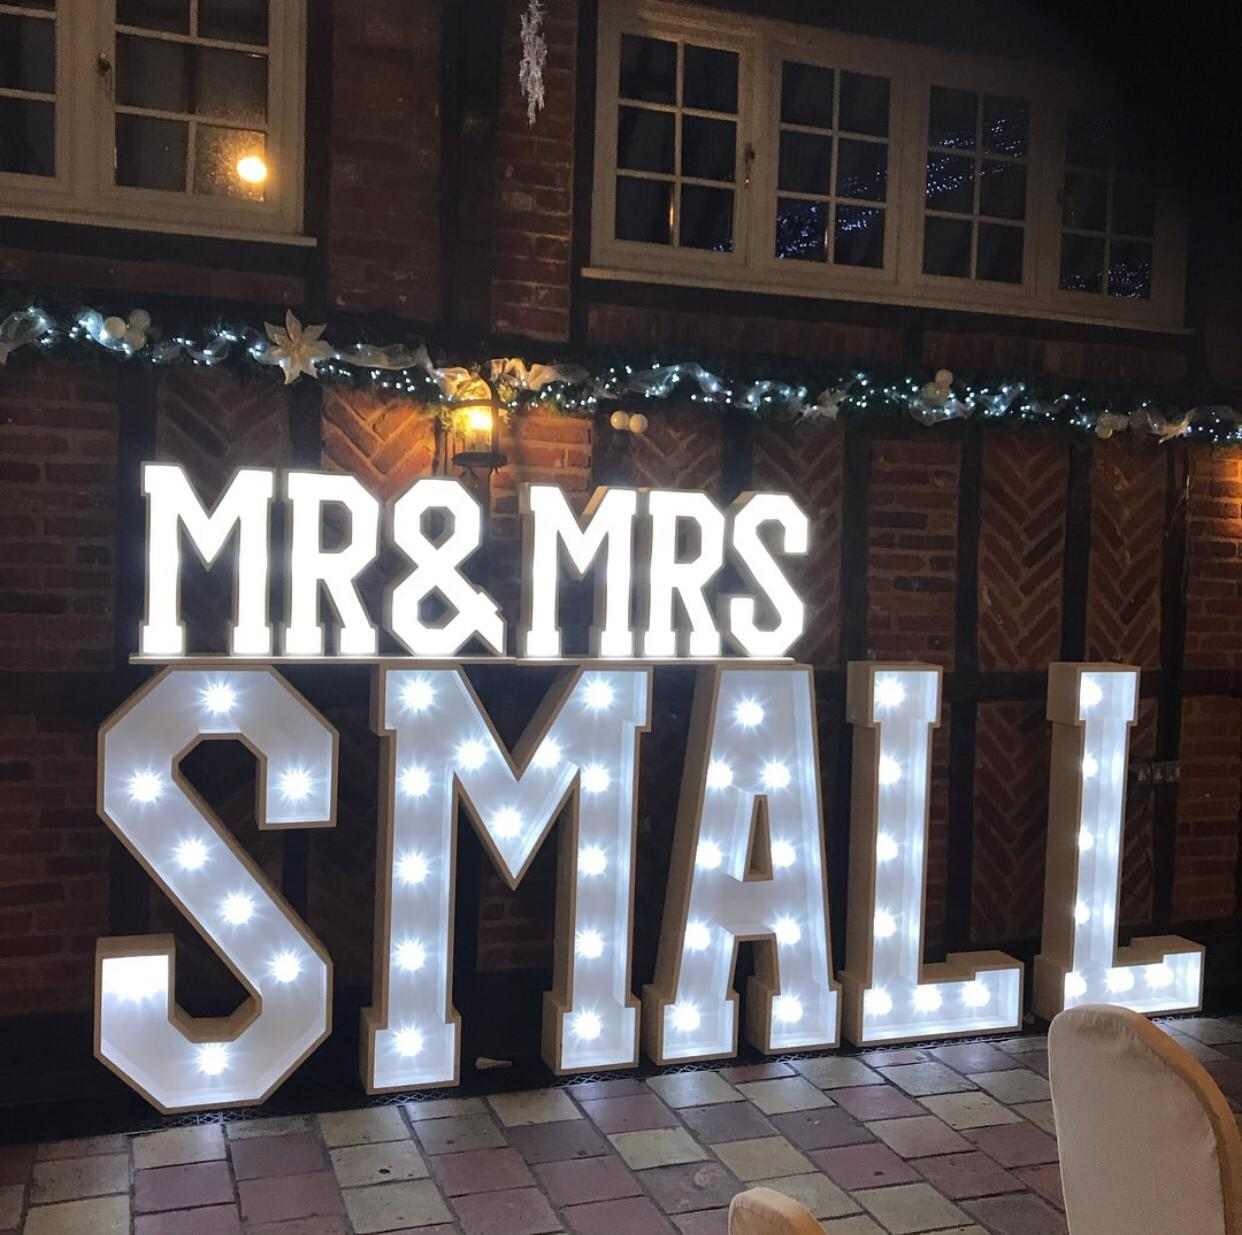 Mr & Mrs… - Bespoke & PersonalPersonalise your special day with the name of the newlyweds lighting up the dance floor - any name to suit, we have lots of letters!